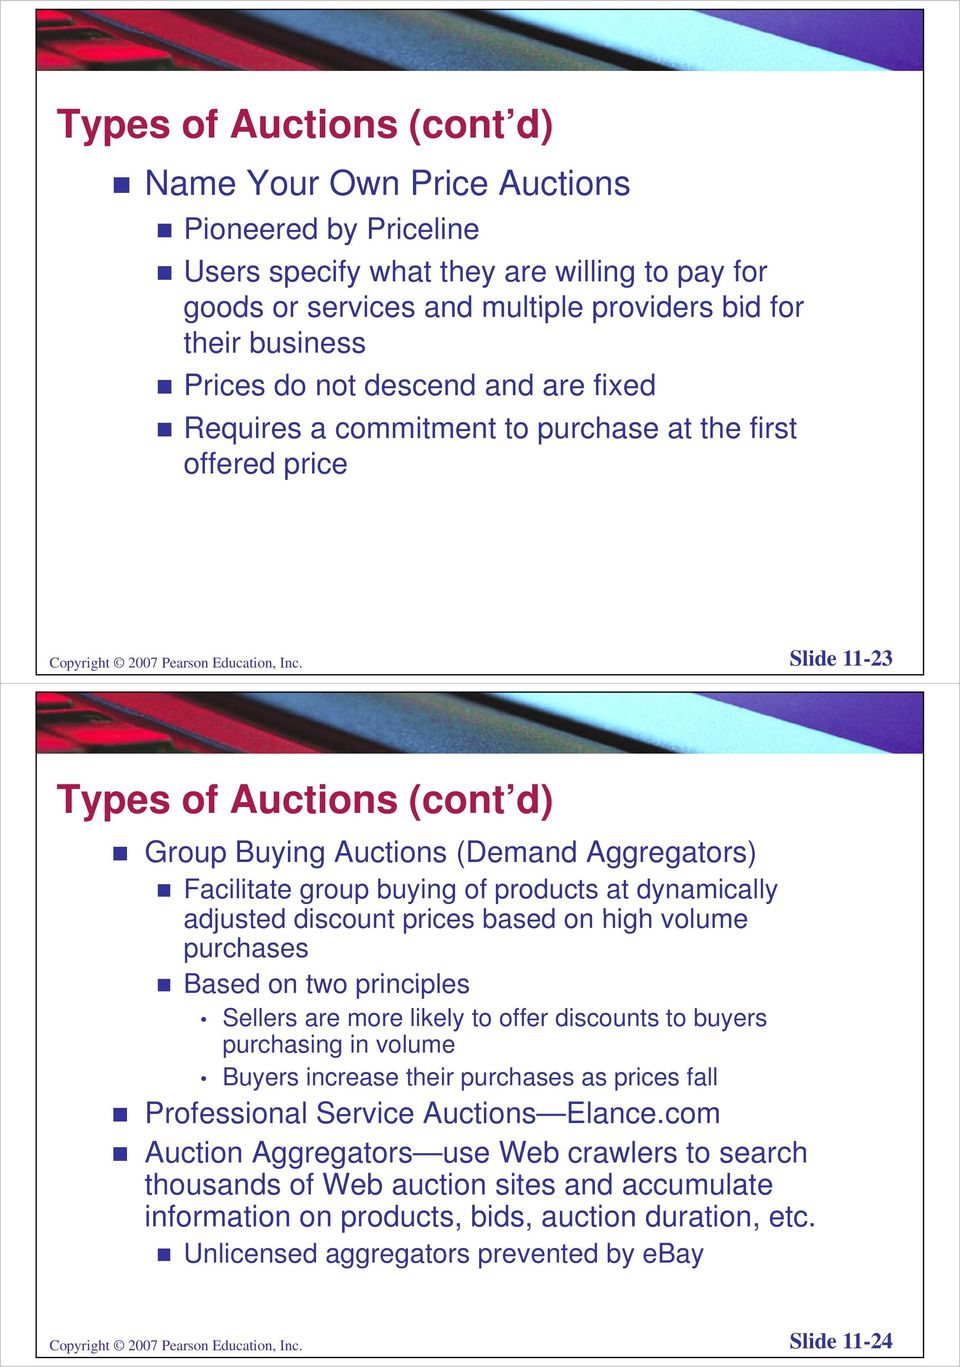 Slide 11-23 Types of Auctions (cont d) Group Buying Auctions (Demand Aggregators) Facilitate group buying of products at dynamically adjusted discount prices based on high volume purchases Based on